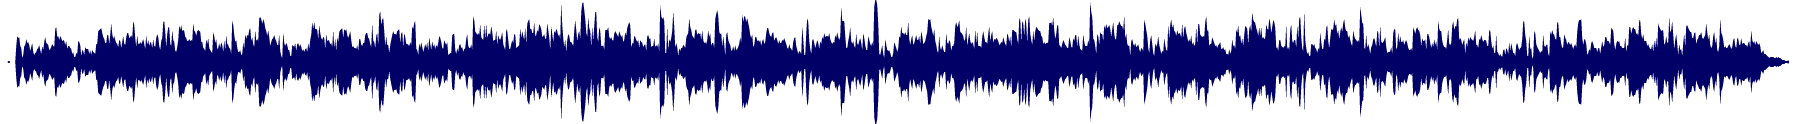 waveform of track #70980